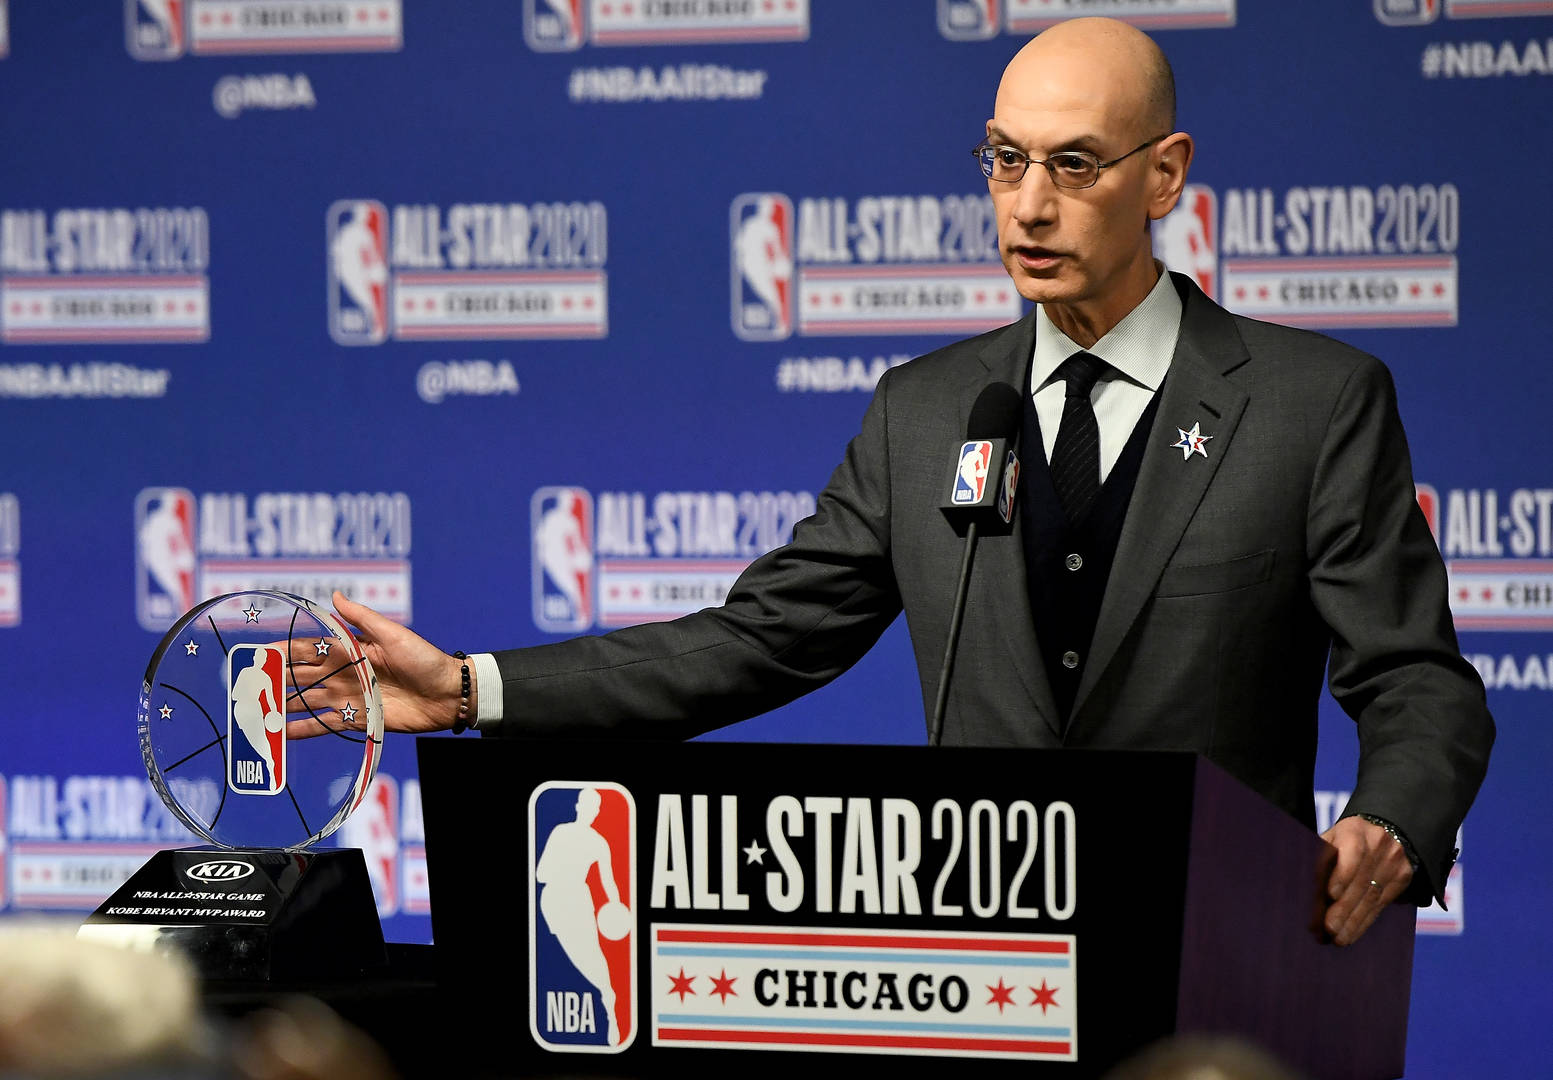 NBA, ESPN Working On Nationally Televised H-O-R-S-E Competition